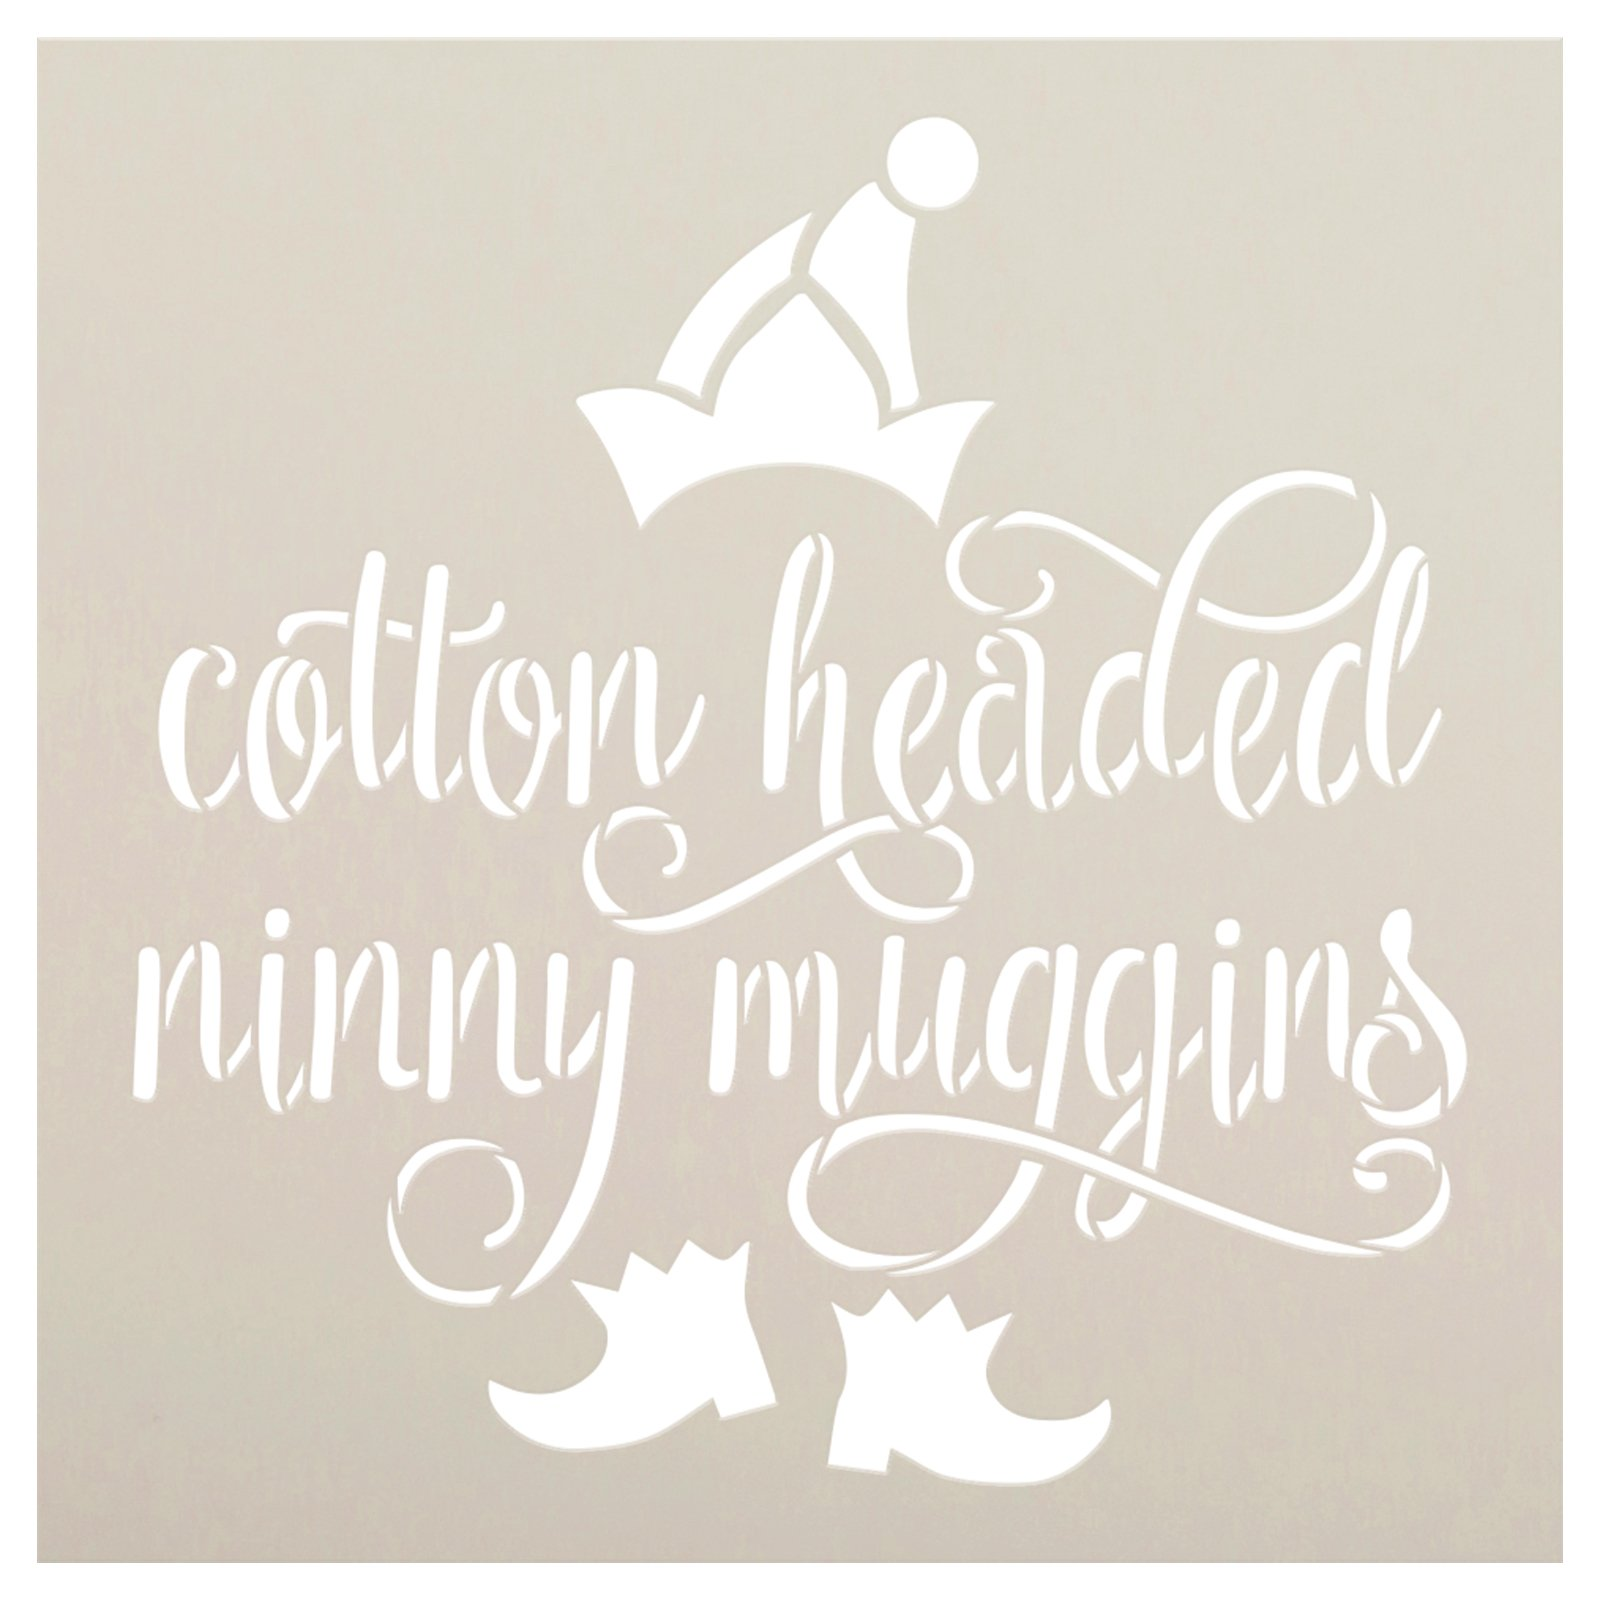 Cotton Headed Ninny Muggins Stencil by StudioR12 | DIY Christmas Movie Home Decor | Craft & Paint Elf Wood Sign Reusable Mylar Template | Select Size